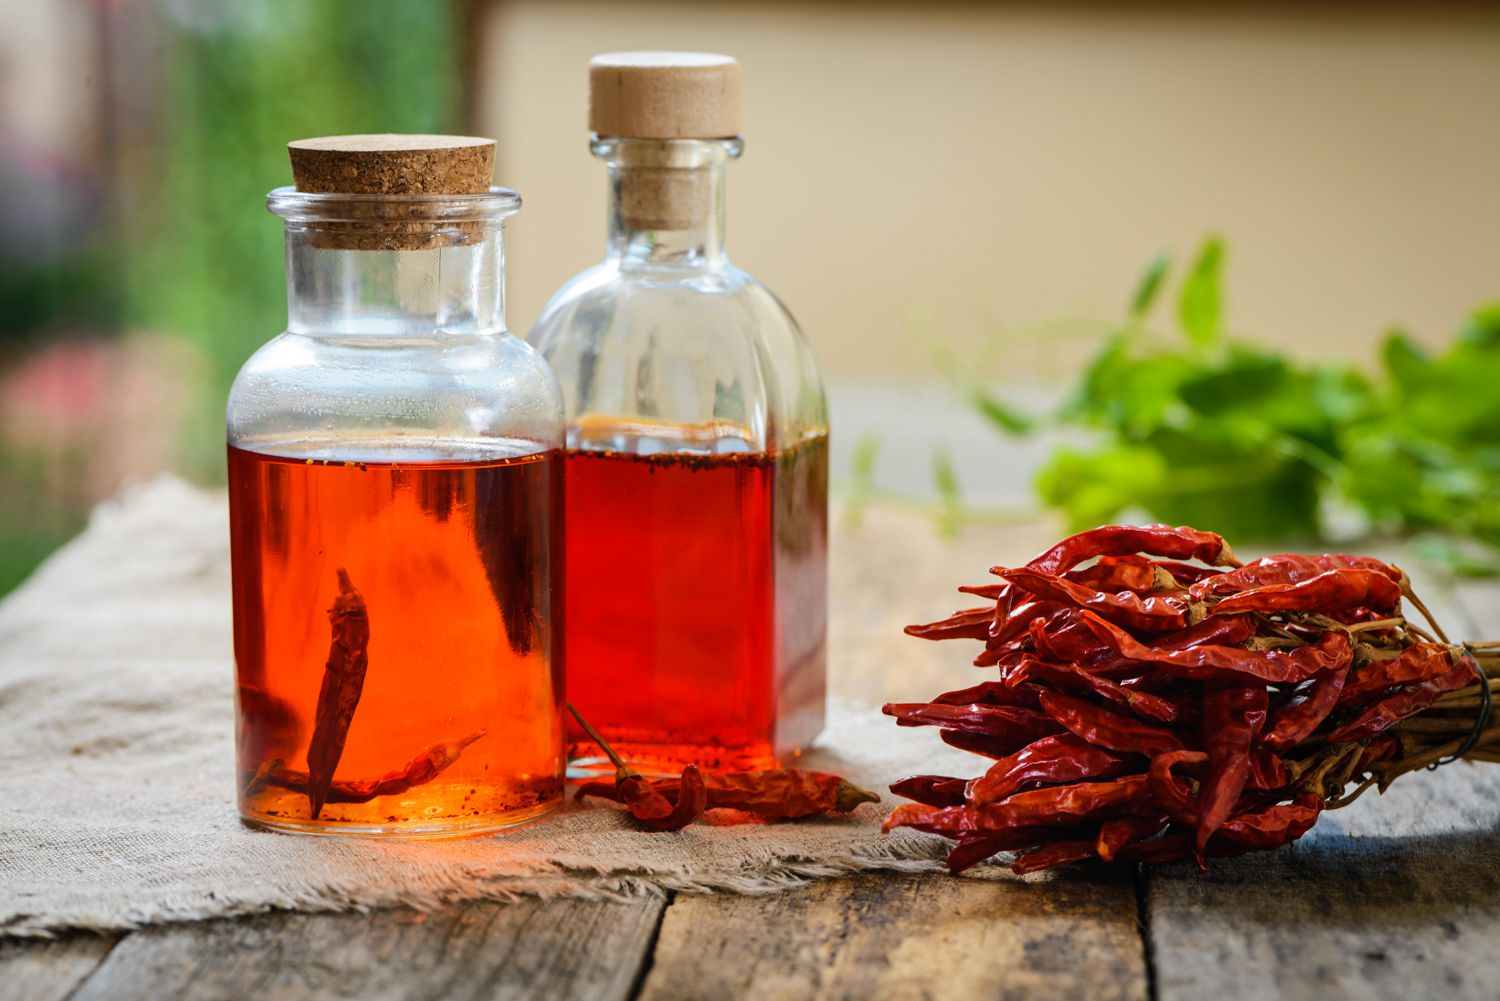 How to Make Asian Chili Oil at Home